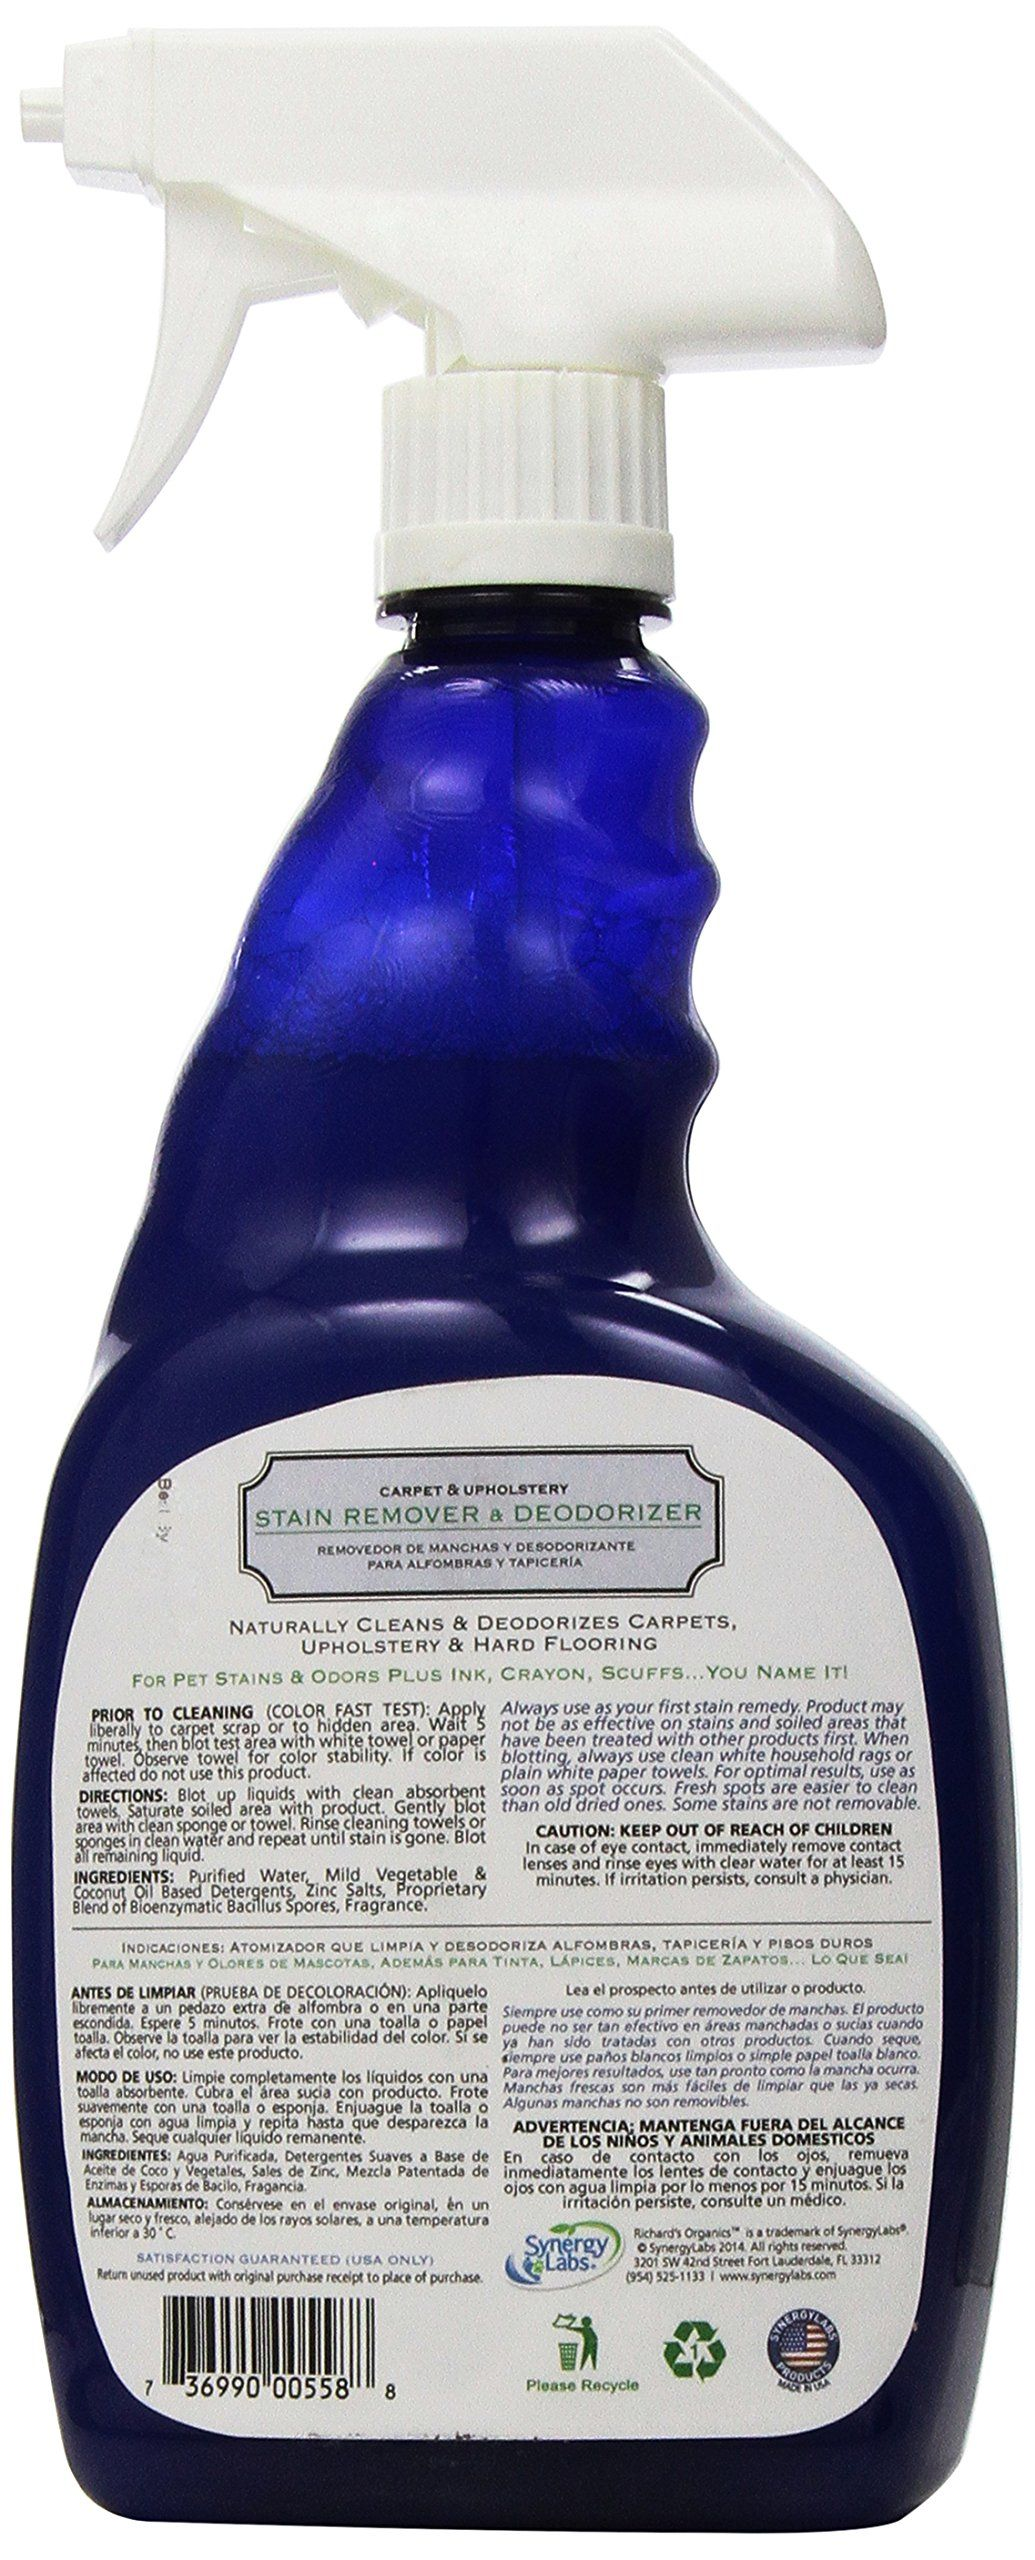 17 Enticing Upholstery Cleaner Ideas Upholstery Upholstery Repair Upholstery Foam